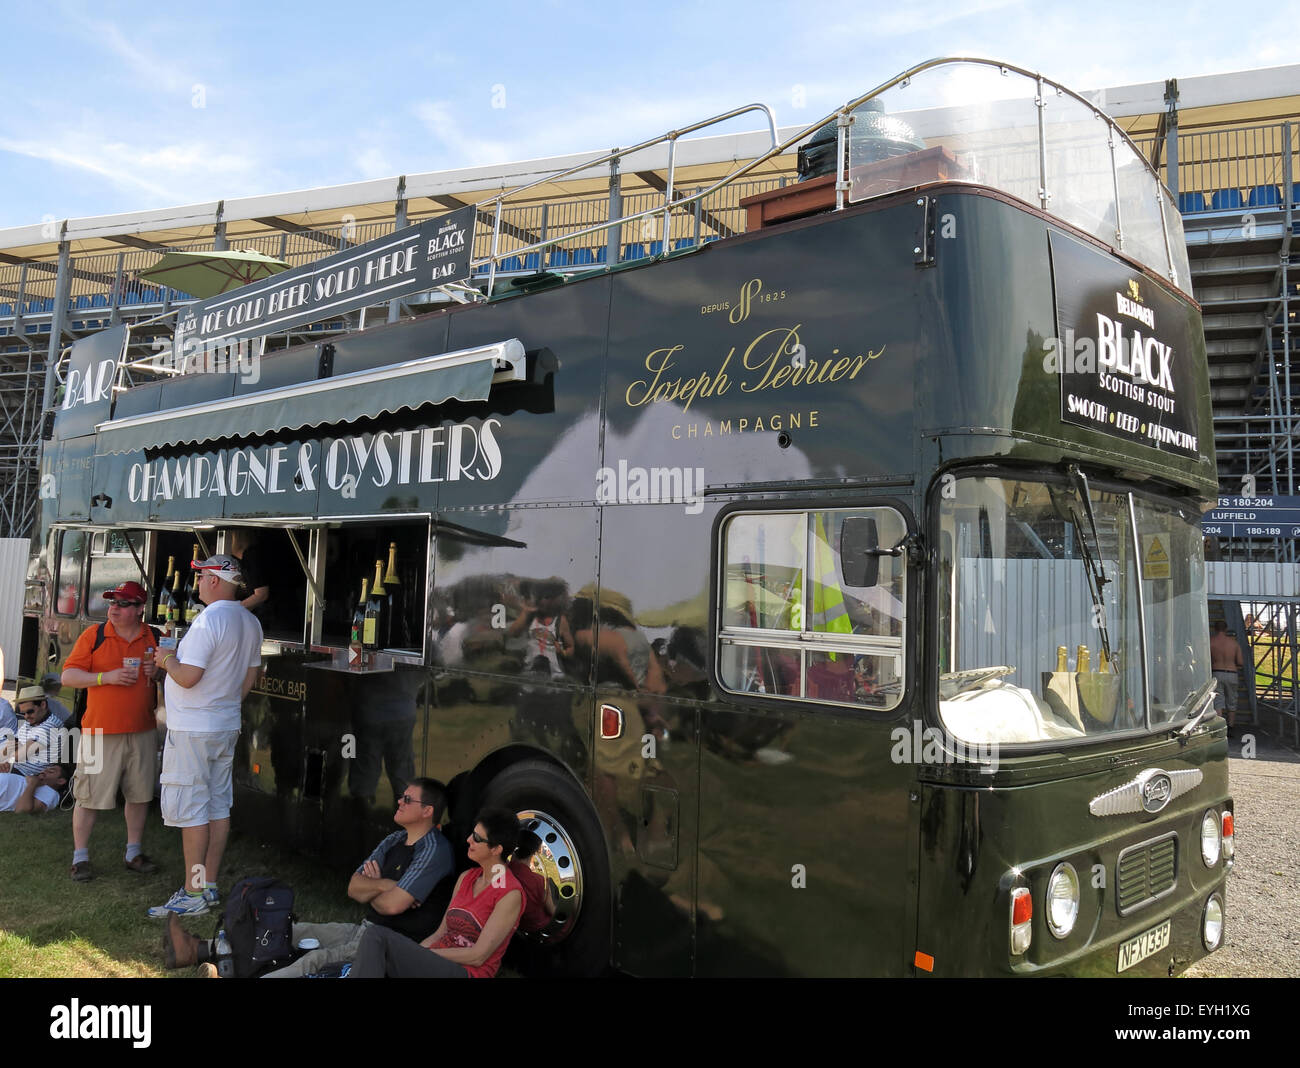 Black bus,Joseph Perrier Champagne and Oyster bar at an event - Stock Image